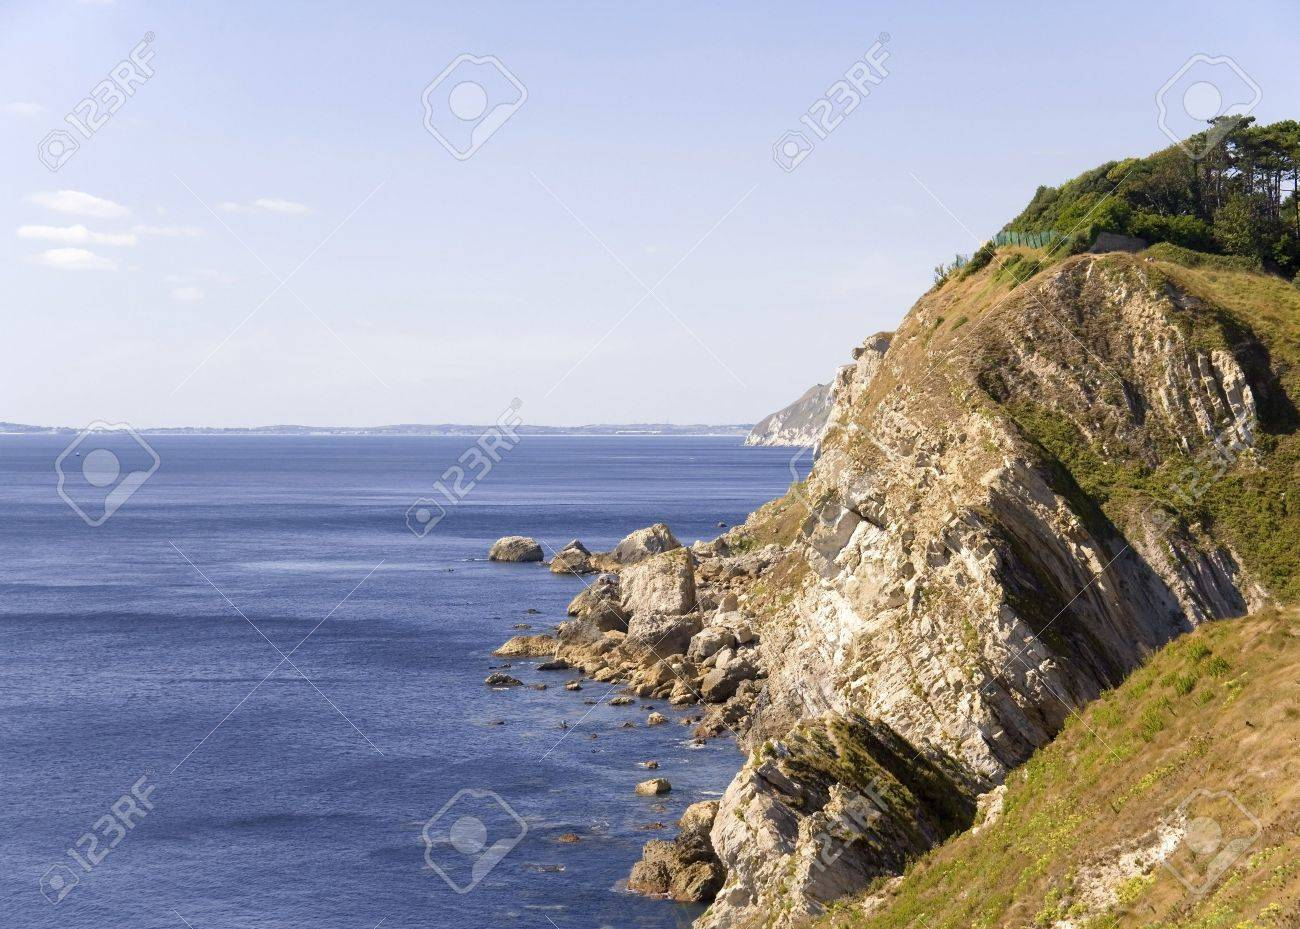 colour image Stair Holecoast coastal features and cliffs erosion